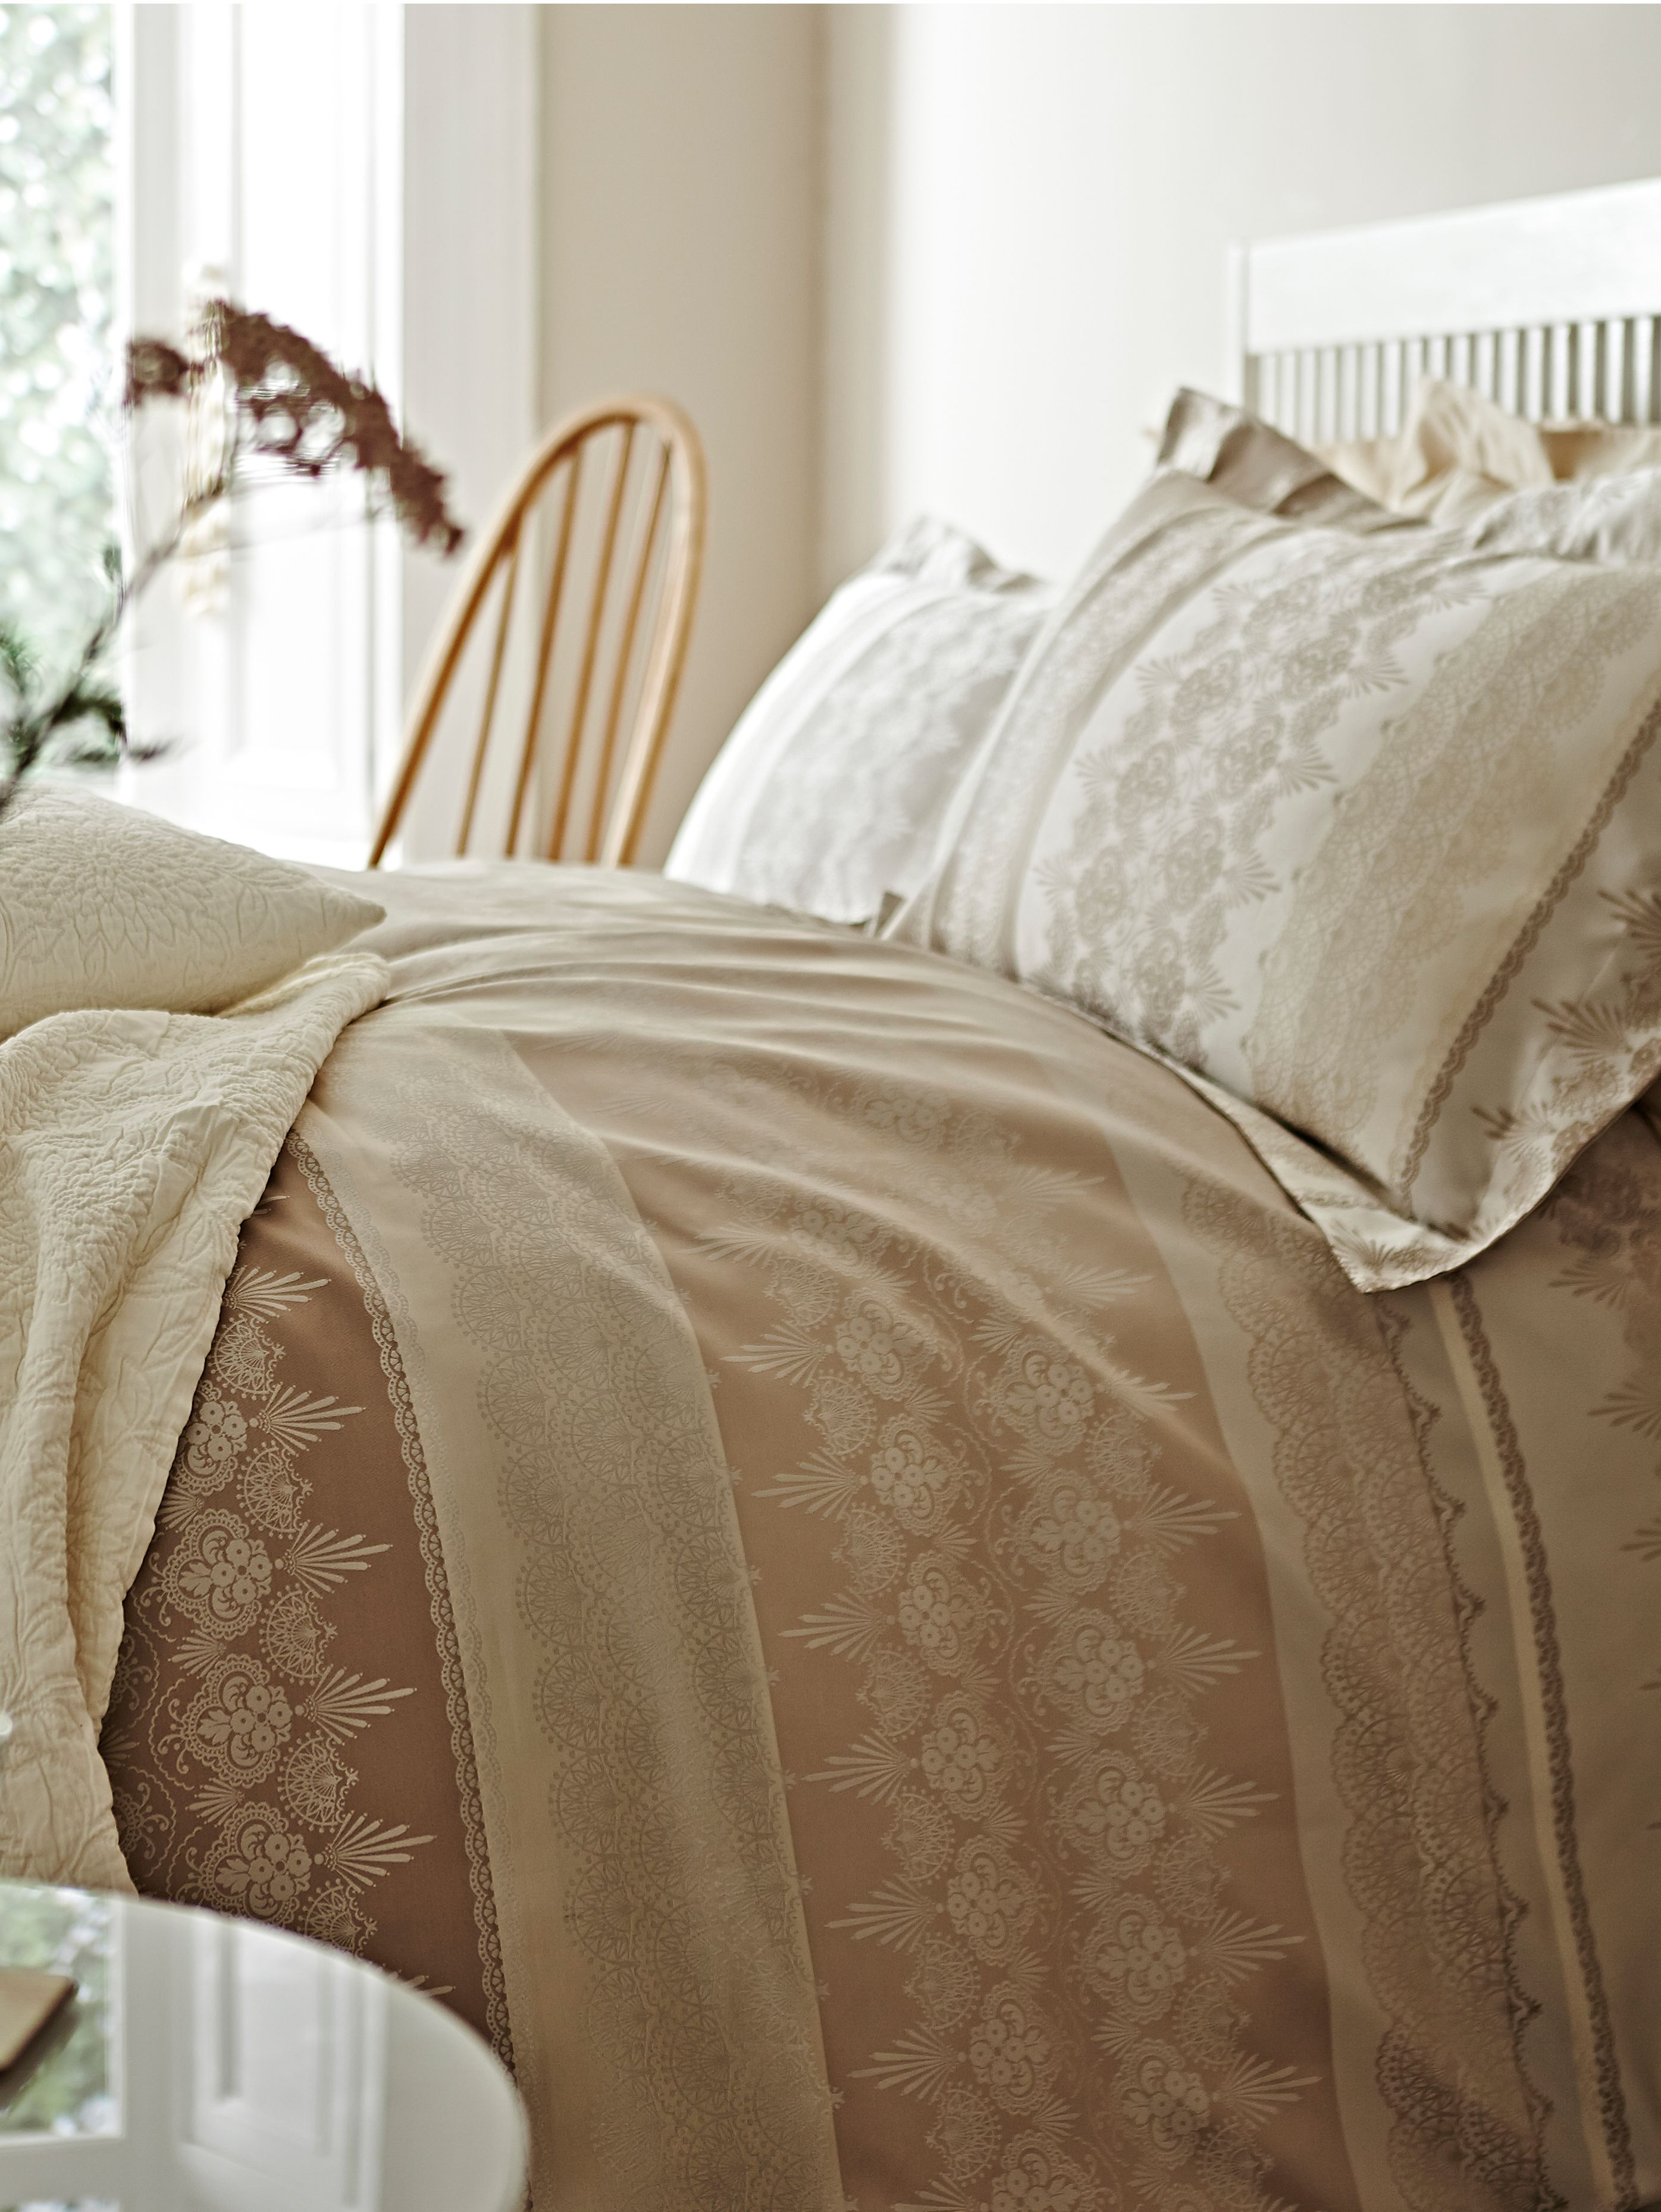 Lace jacquard double duvet set